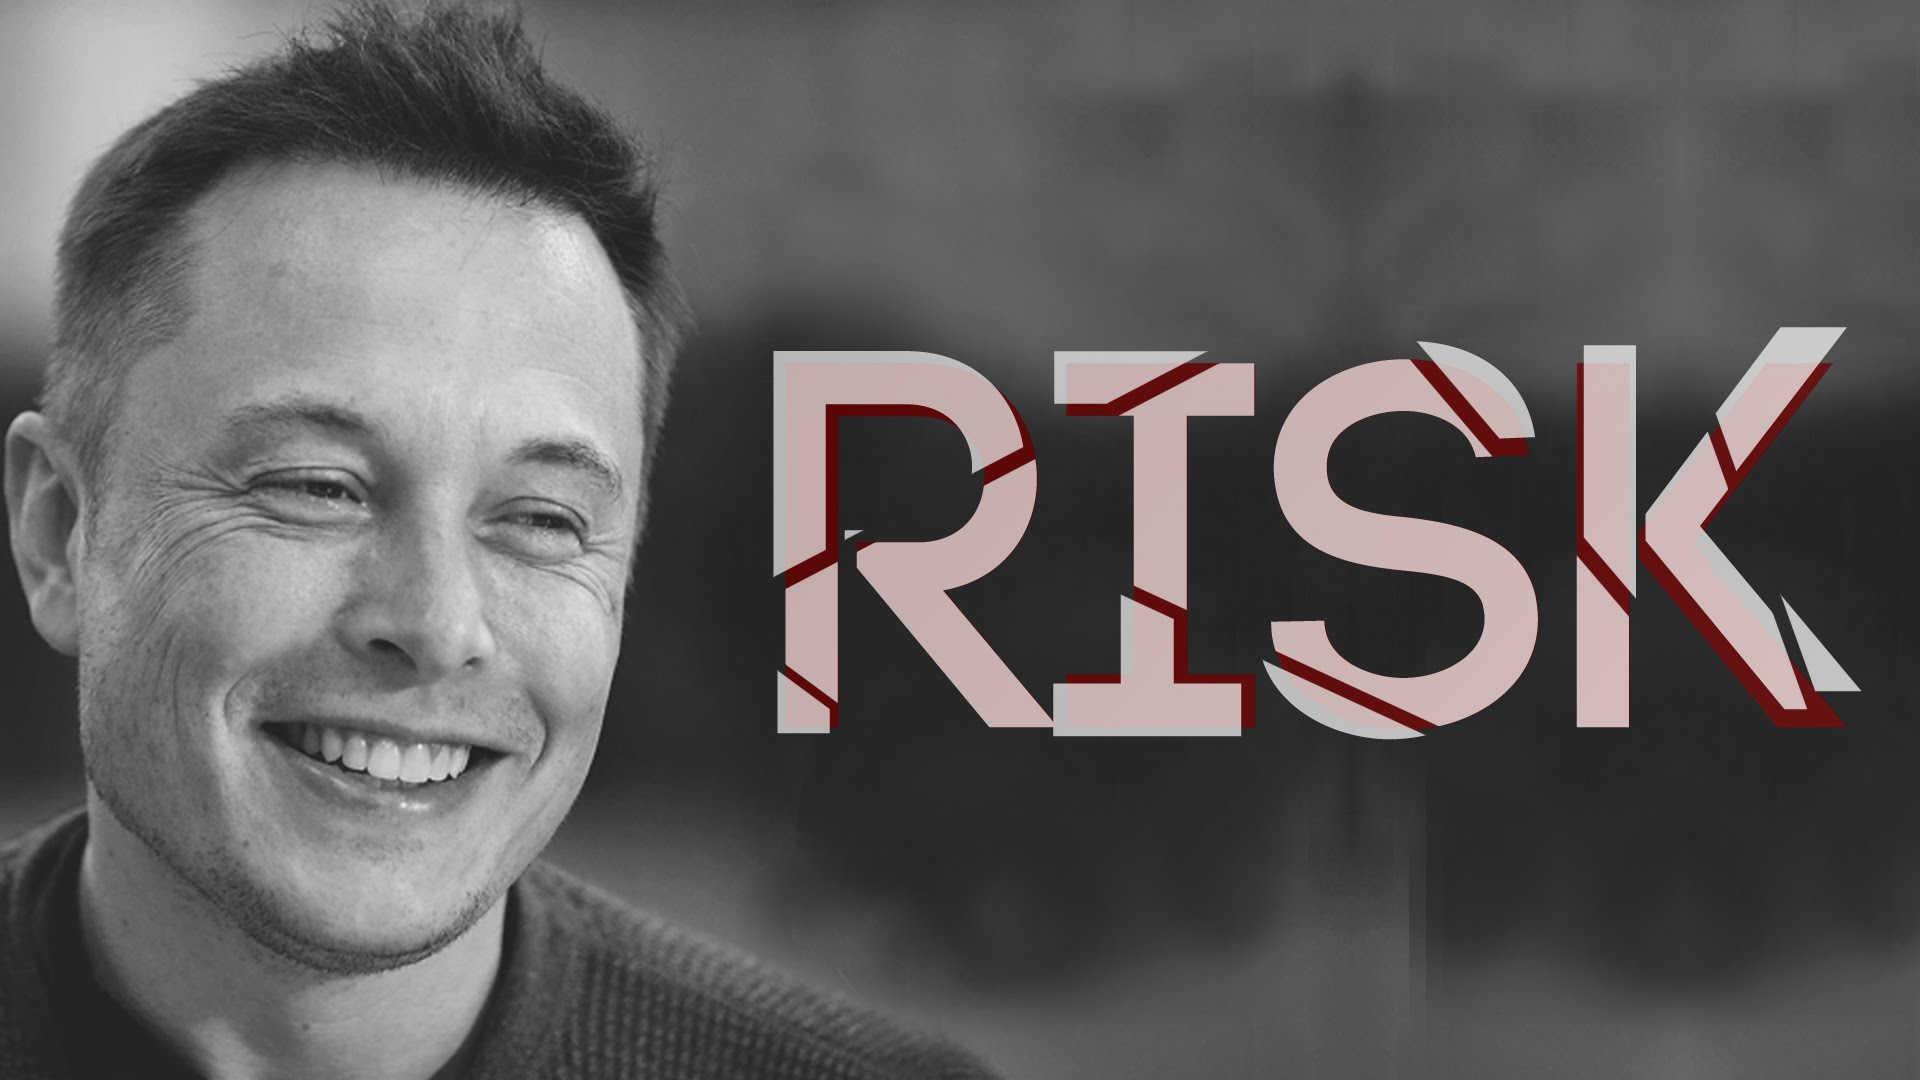 Free Download Elon Musk Wallpapers High Resolution And